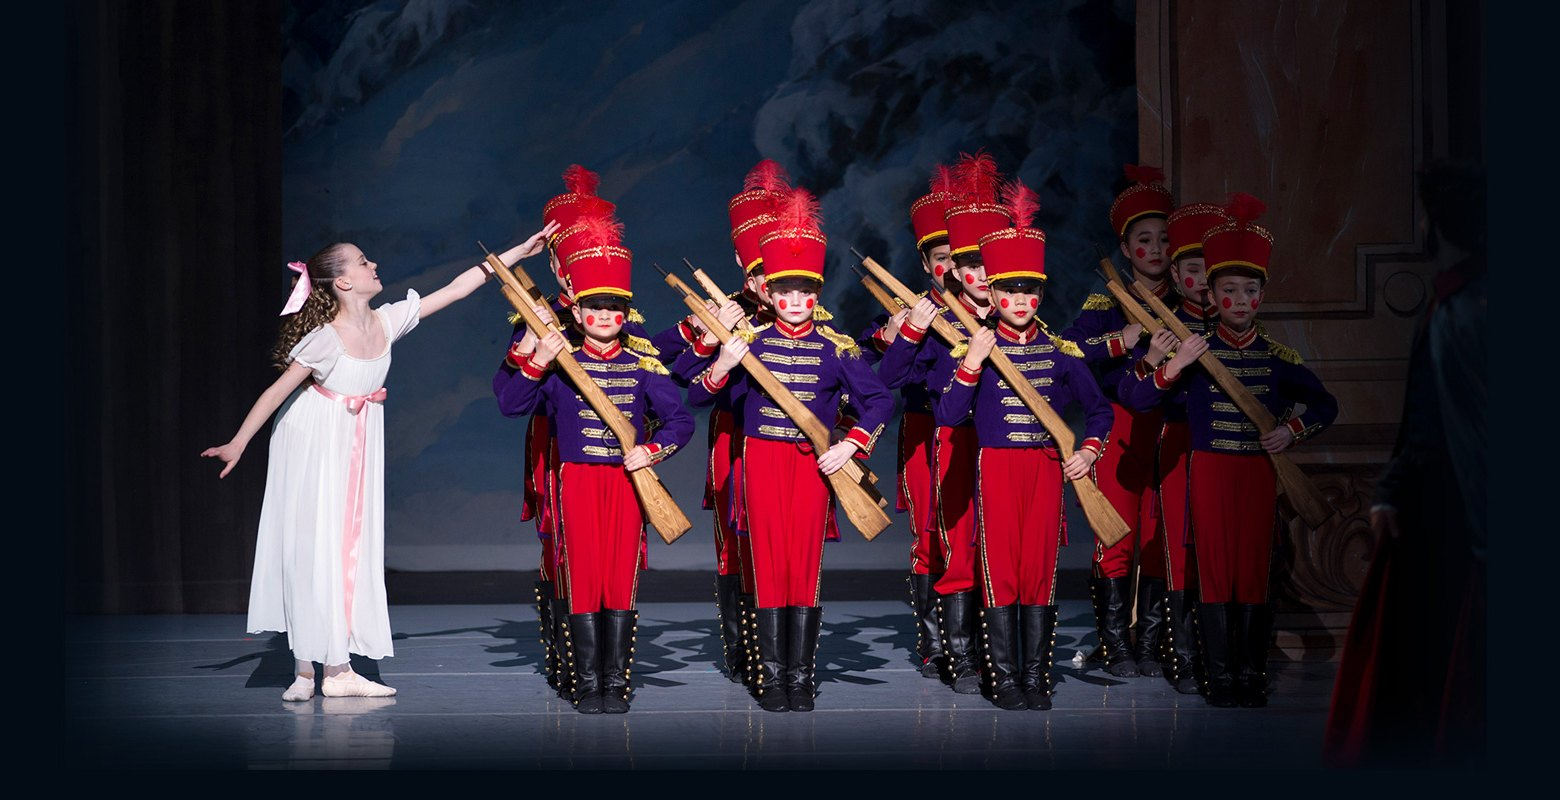 See The Nutcracker ballet in Vancouver for Christmas 2017